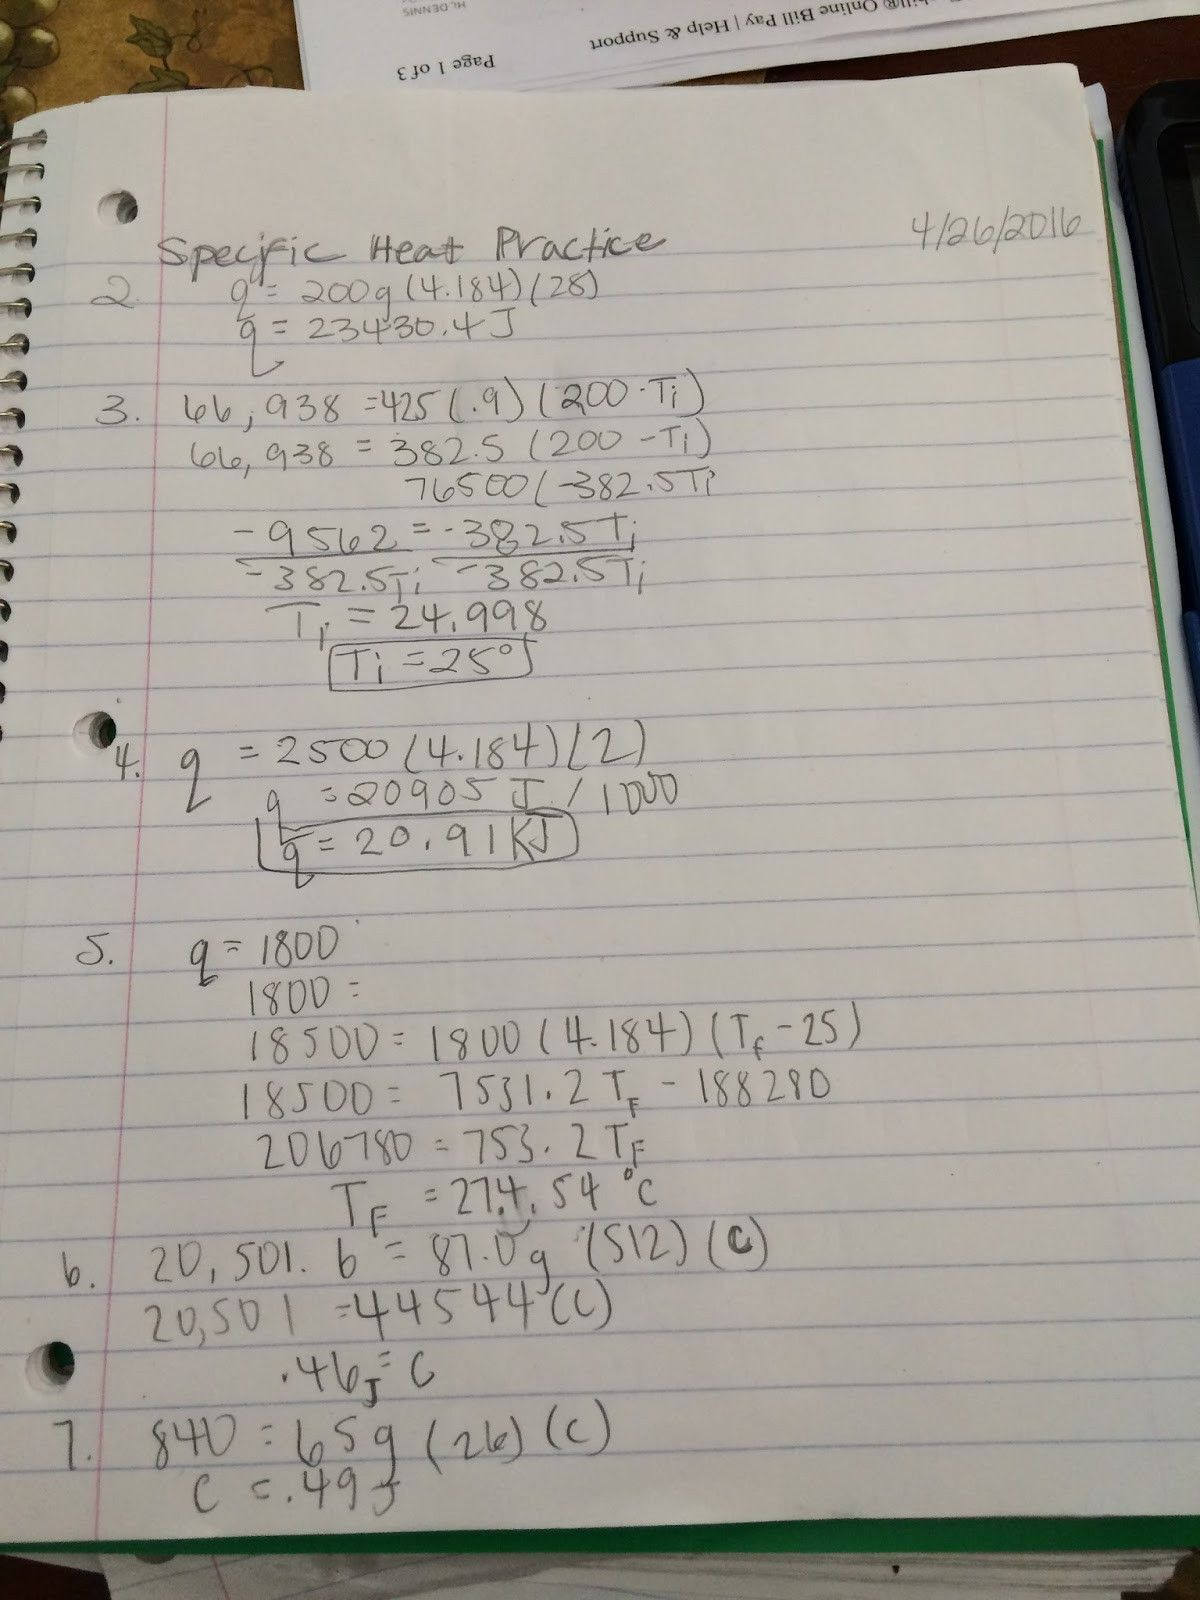 Accomplished Specific Heat Calculations Worksheet